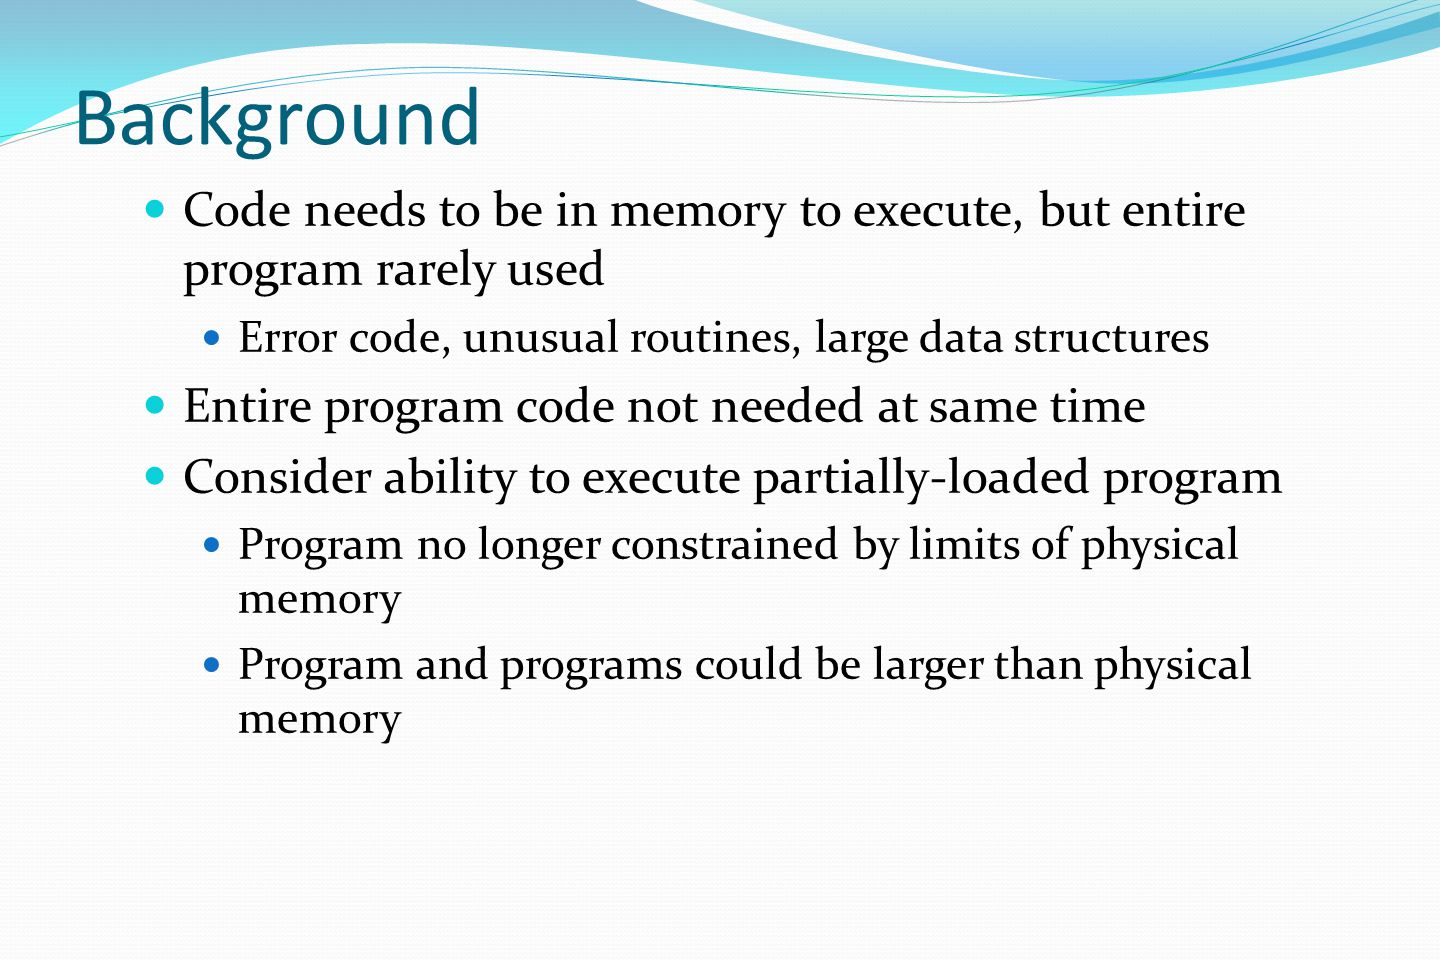 Background Code needs to be in memory to execute, but entire program rarely used. Error code, unusual routines, large data structures.